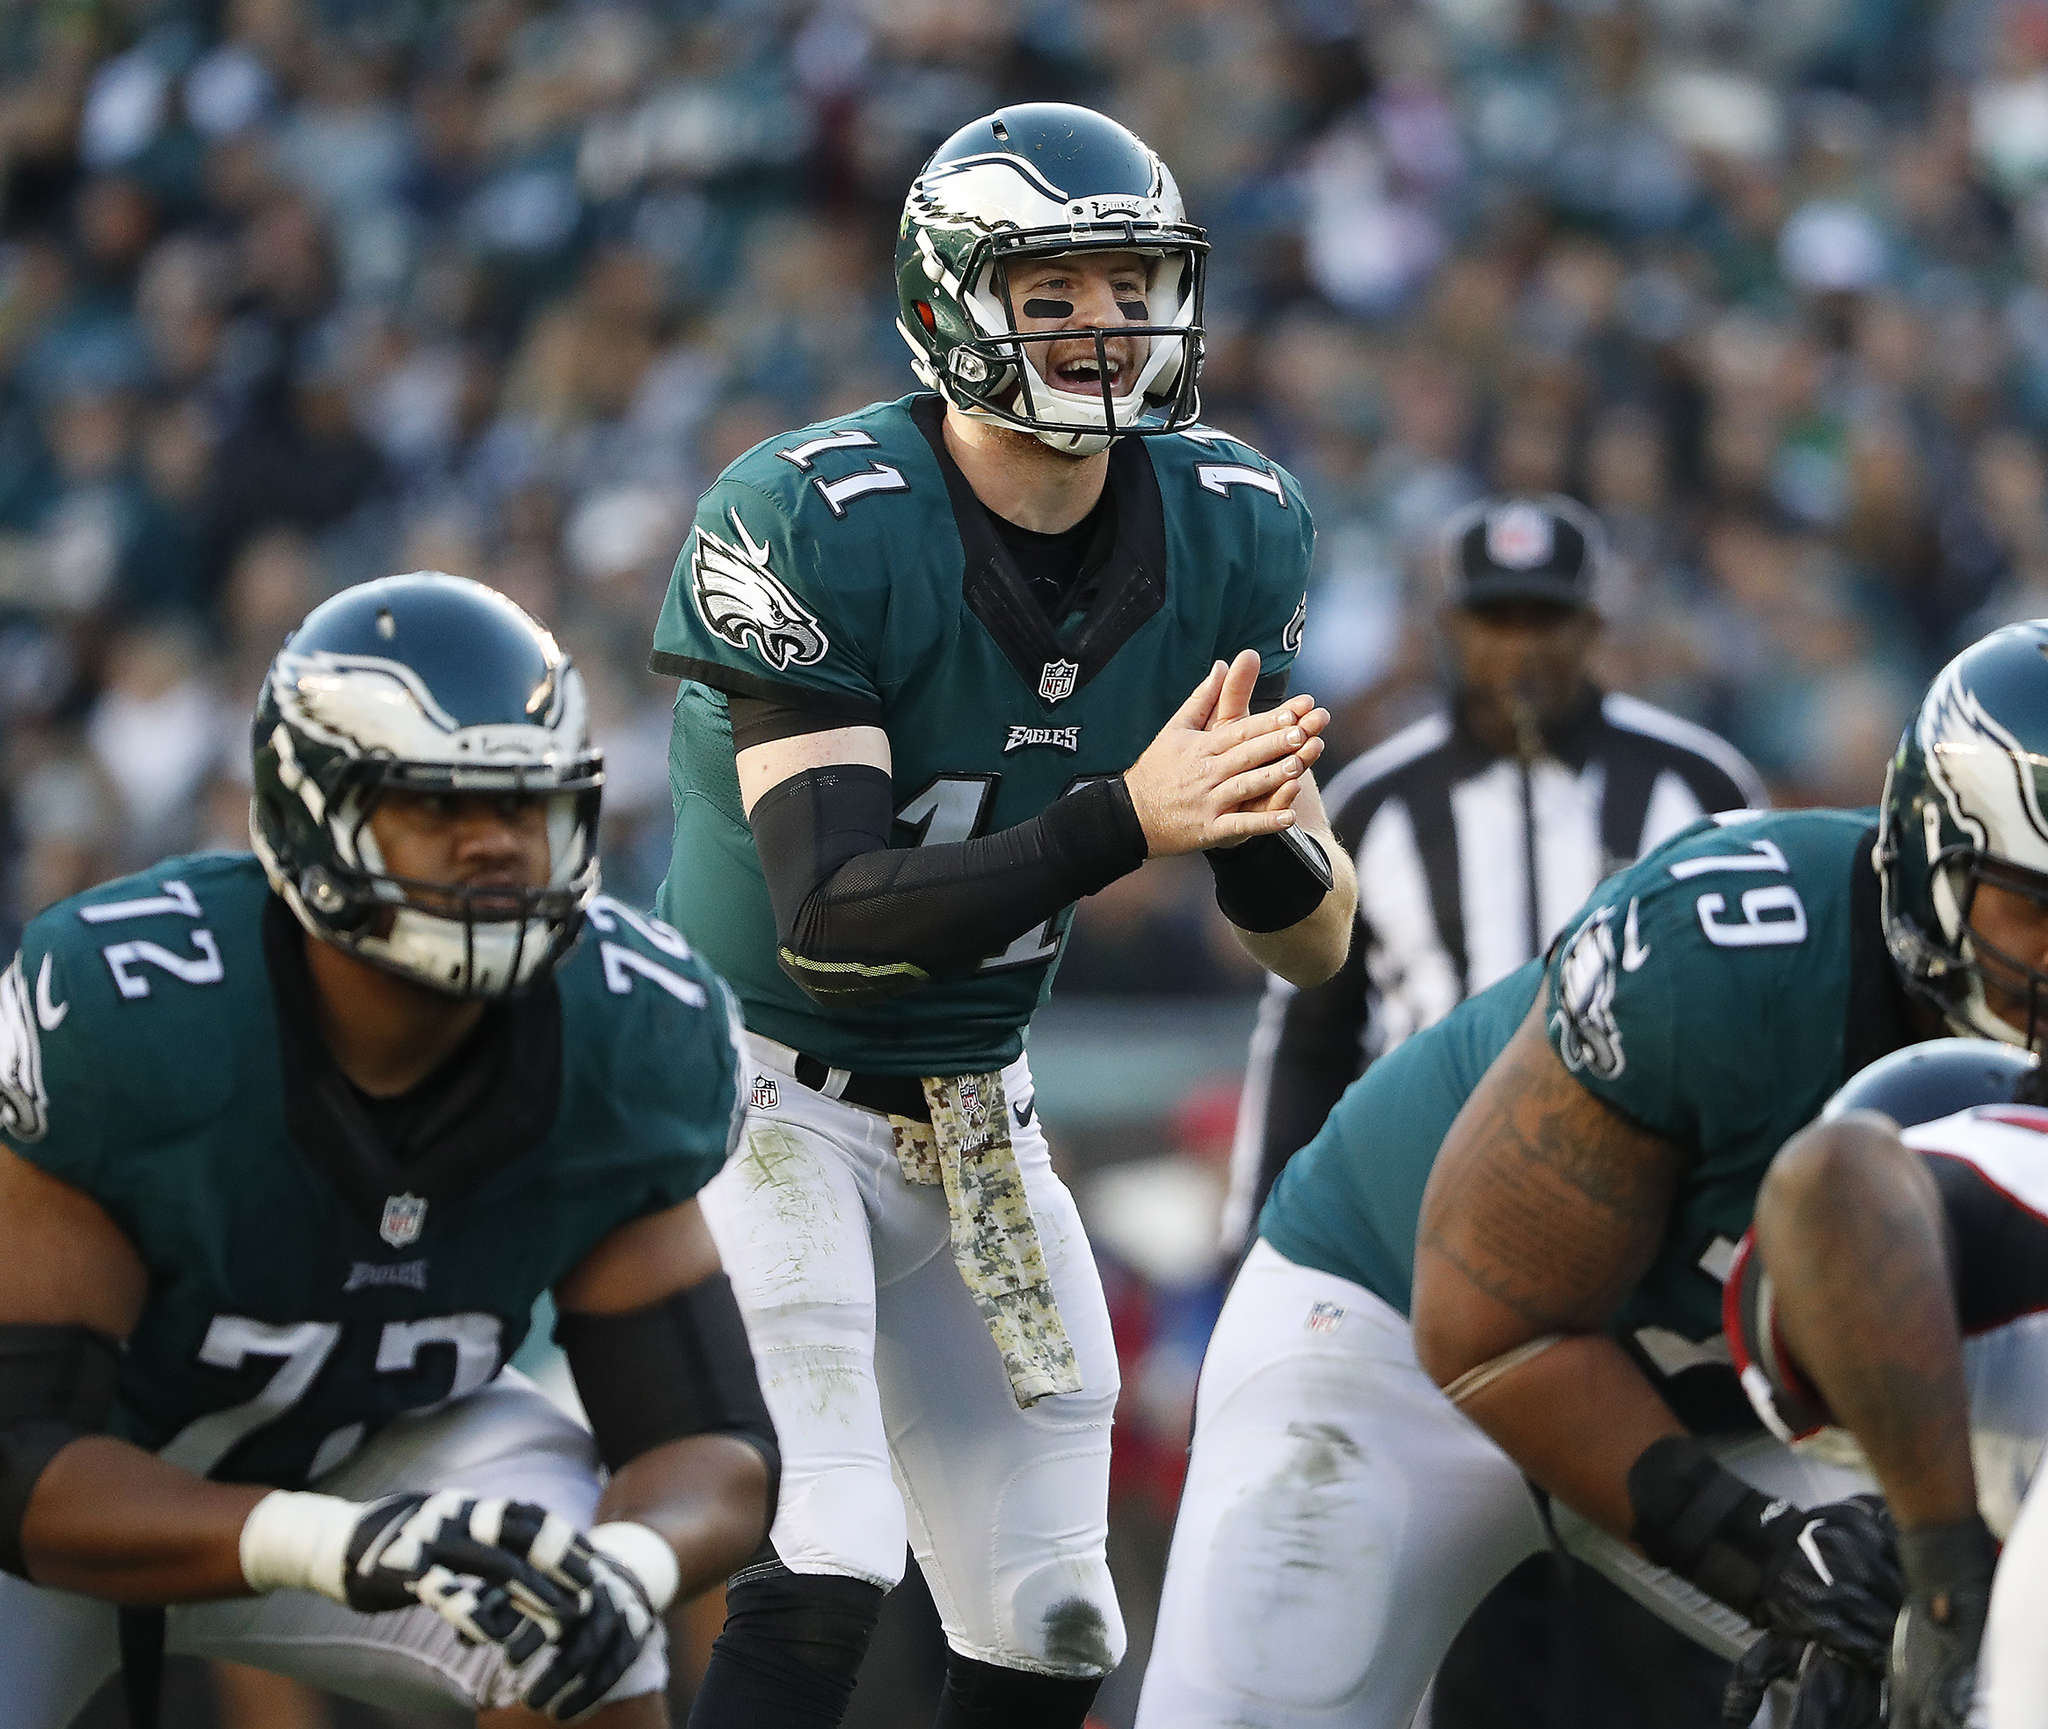 Carson Wentz, who played an efficient game, waits for snap in the third quarter. DAVID MAIALETTI / Staff Photographer